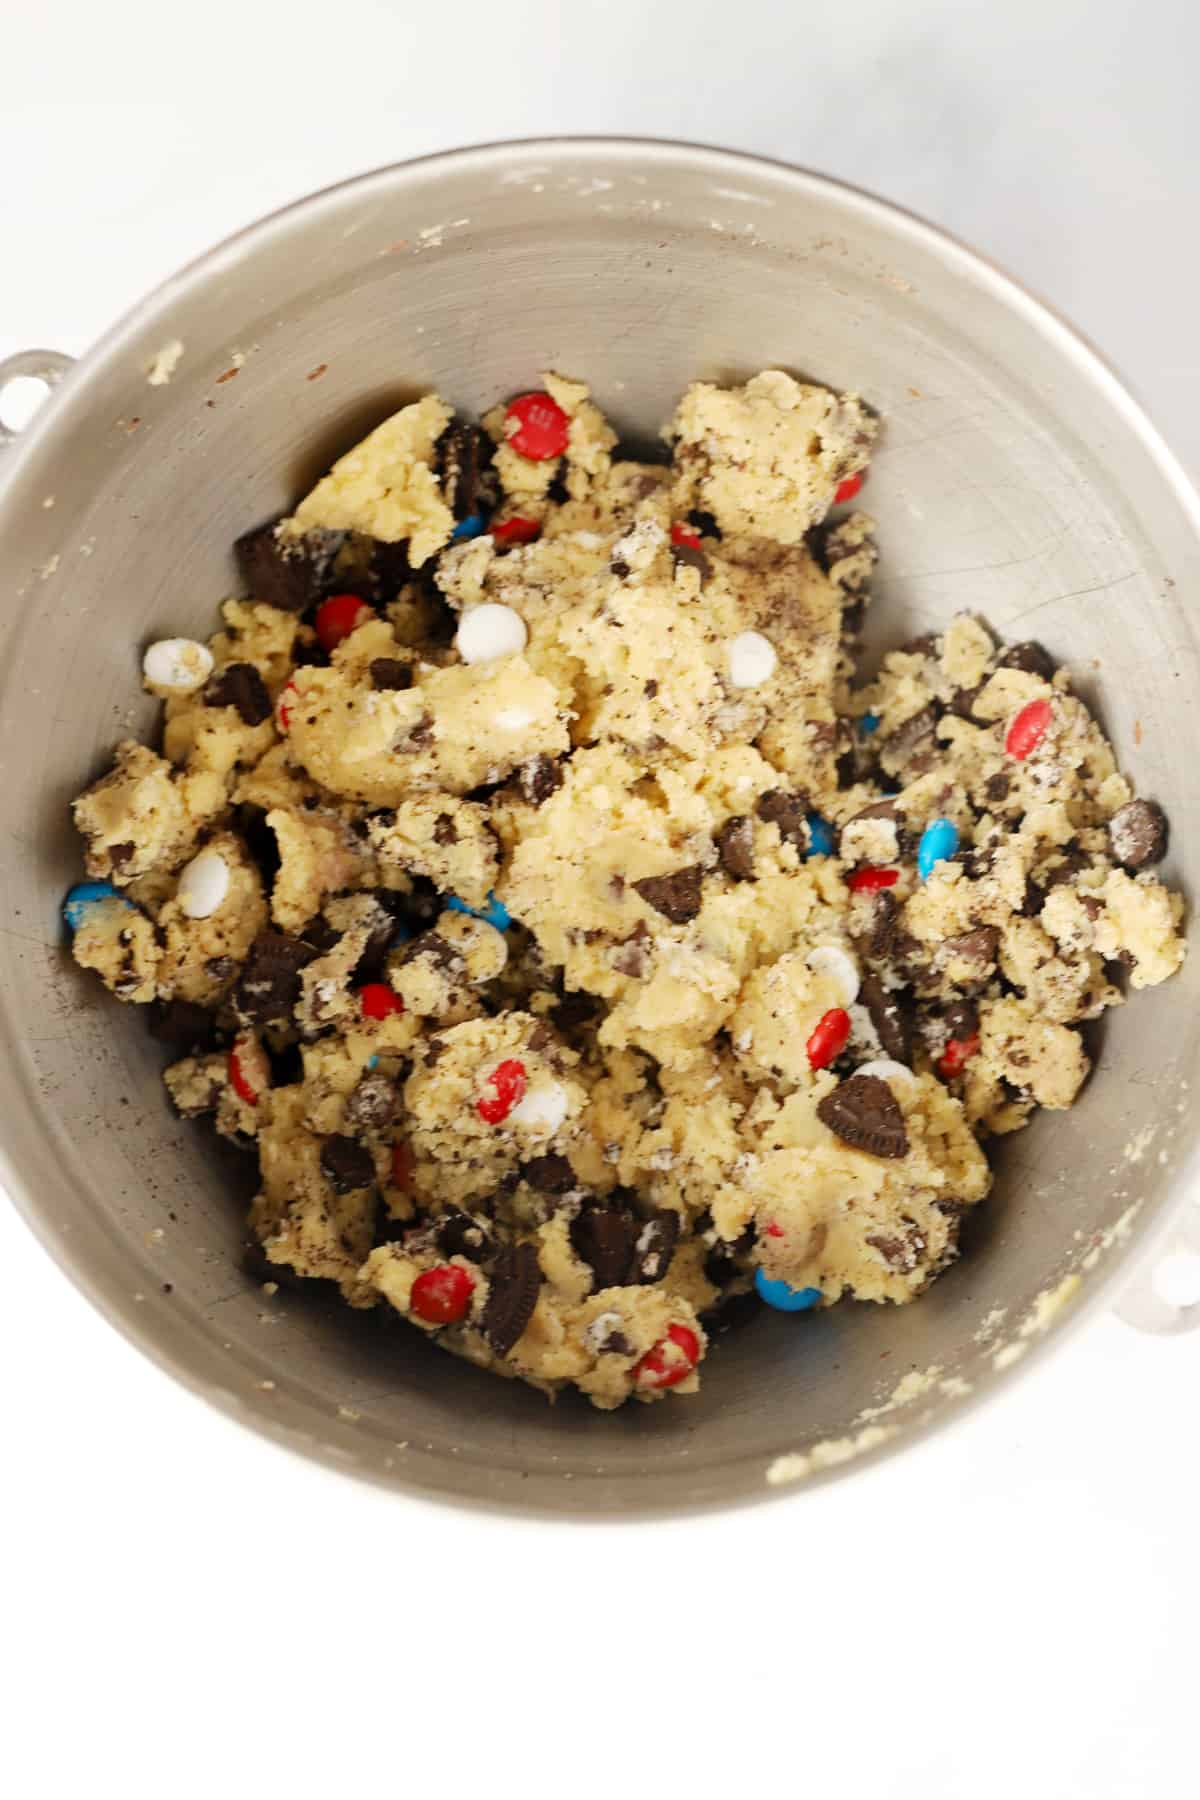 A mixing bowl full of cookie dough with chocolate chips, Oreo pieces and M&Ms.